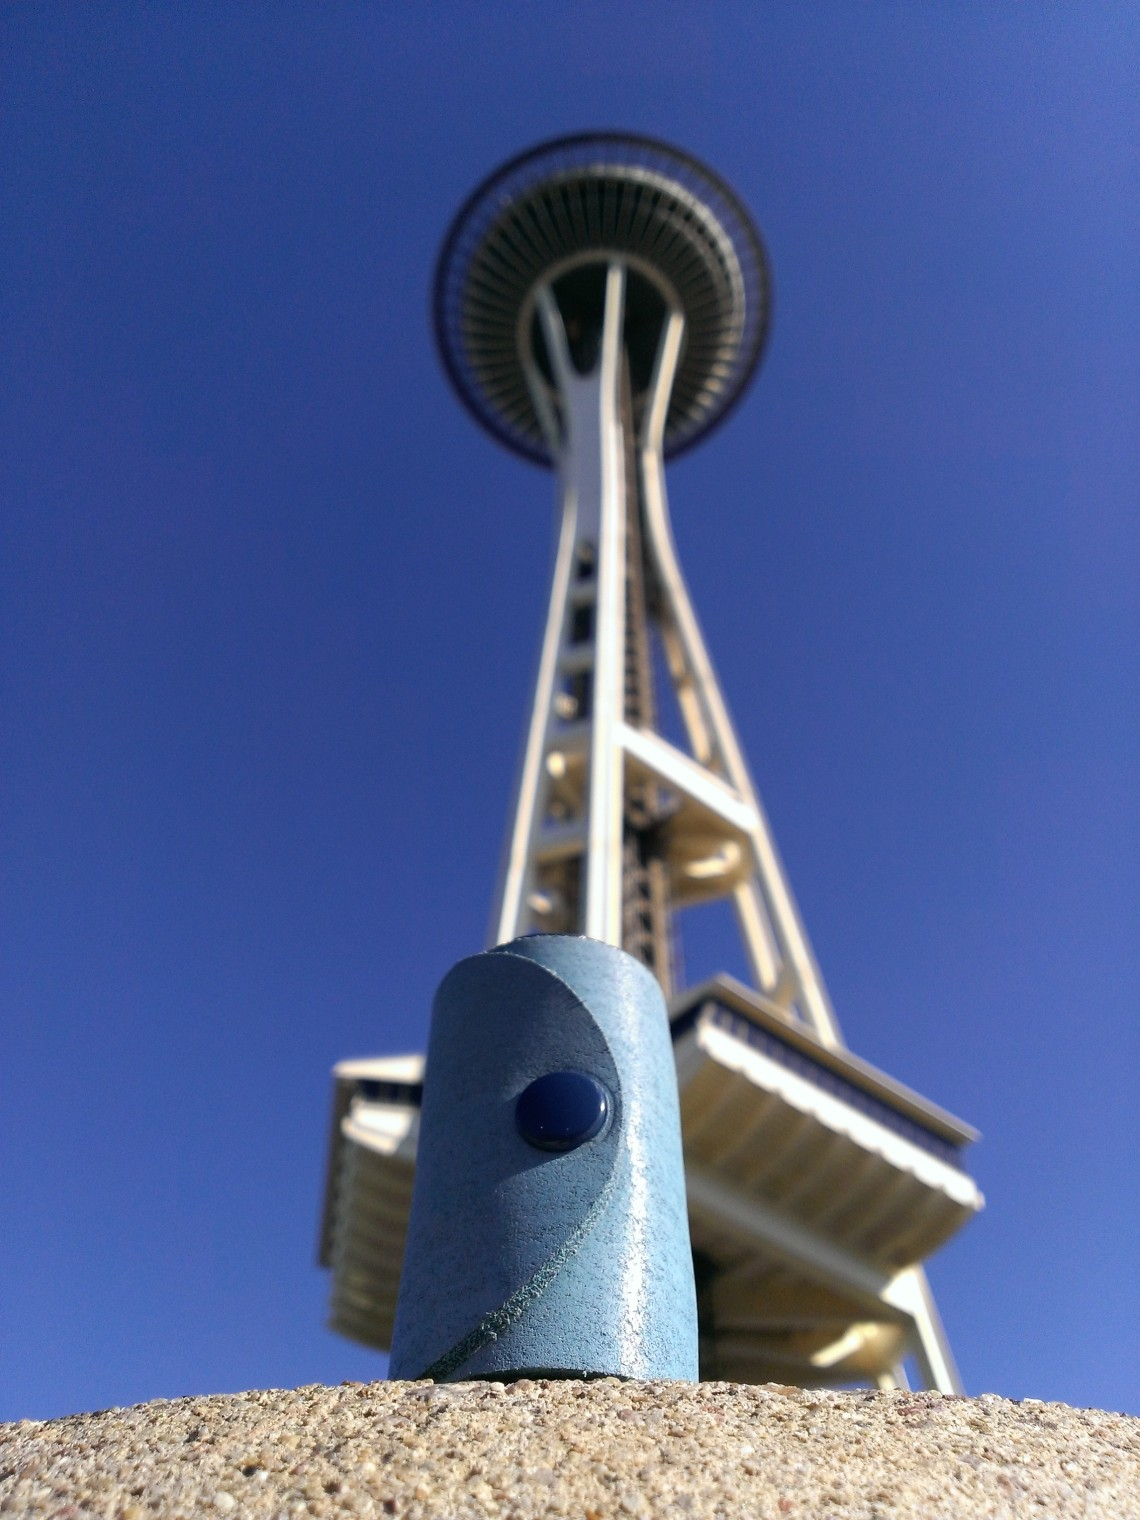 Space Needle and a blue version of TheCrazyTube